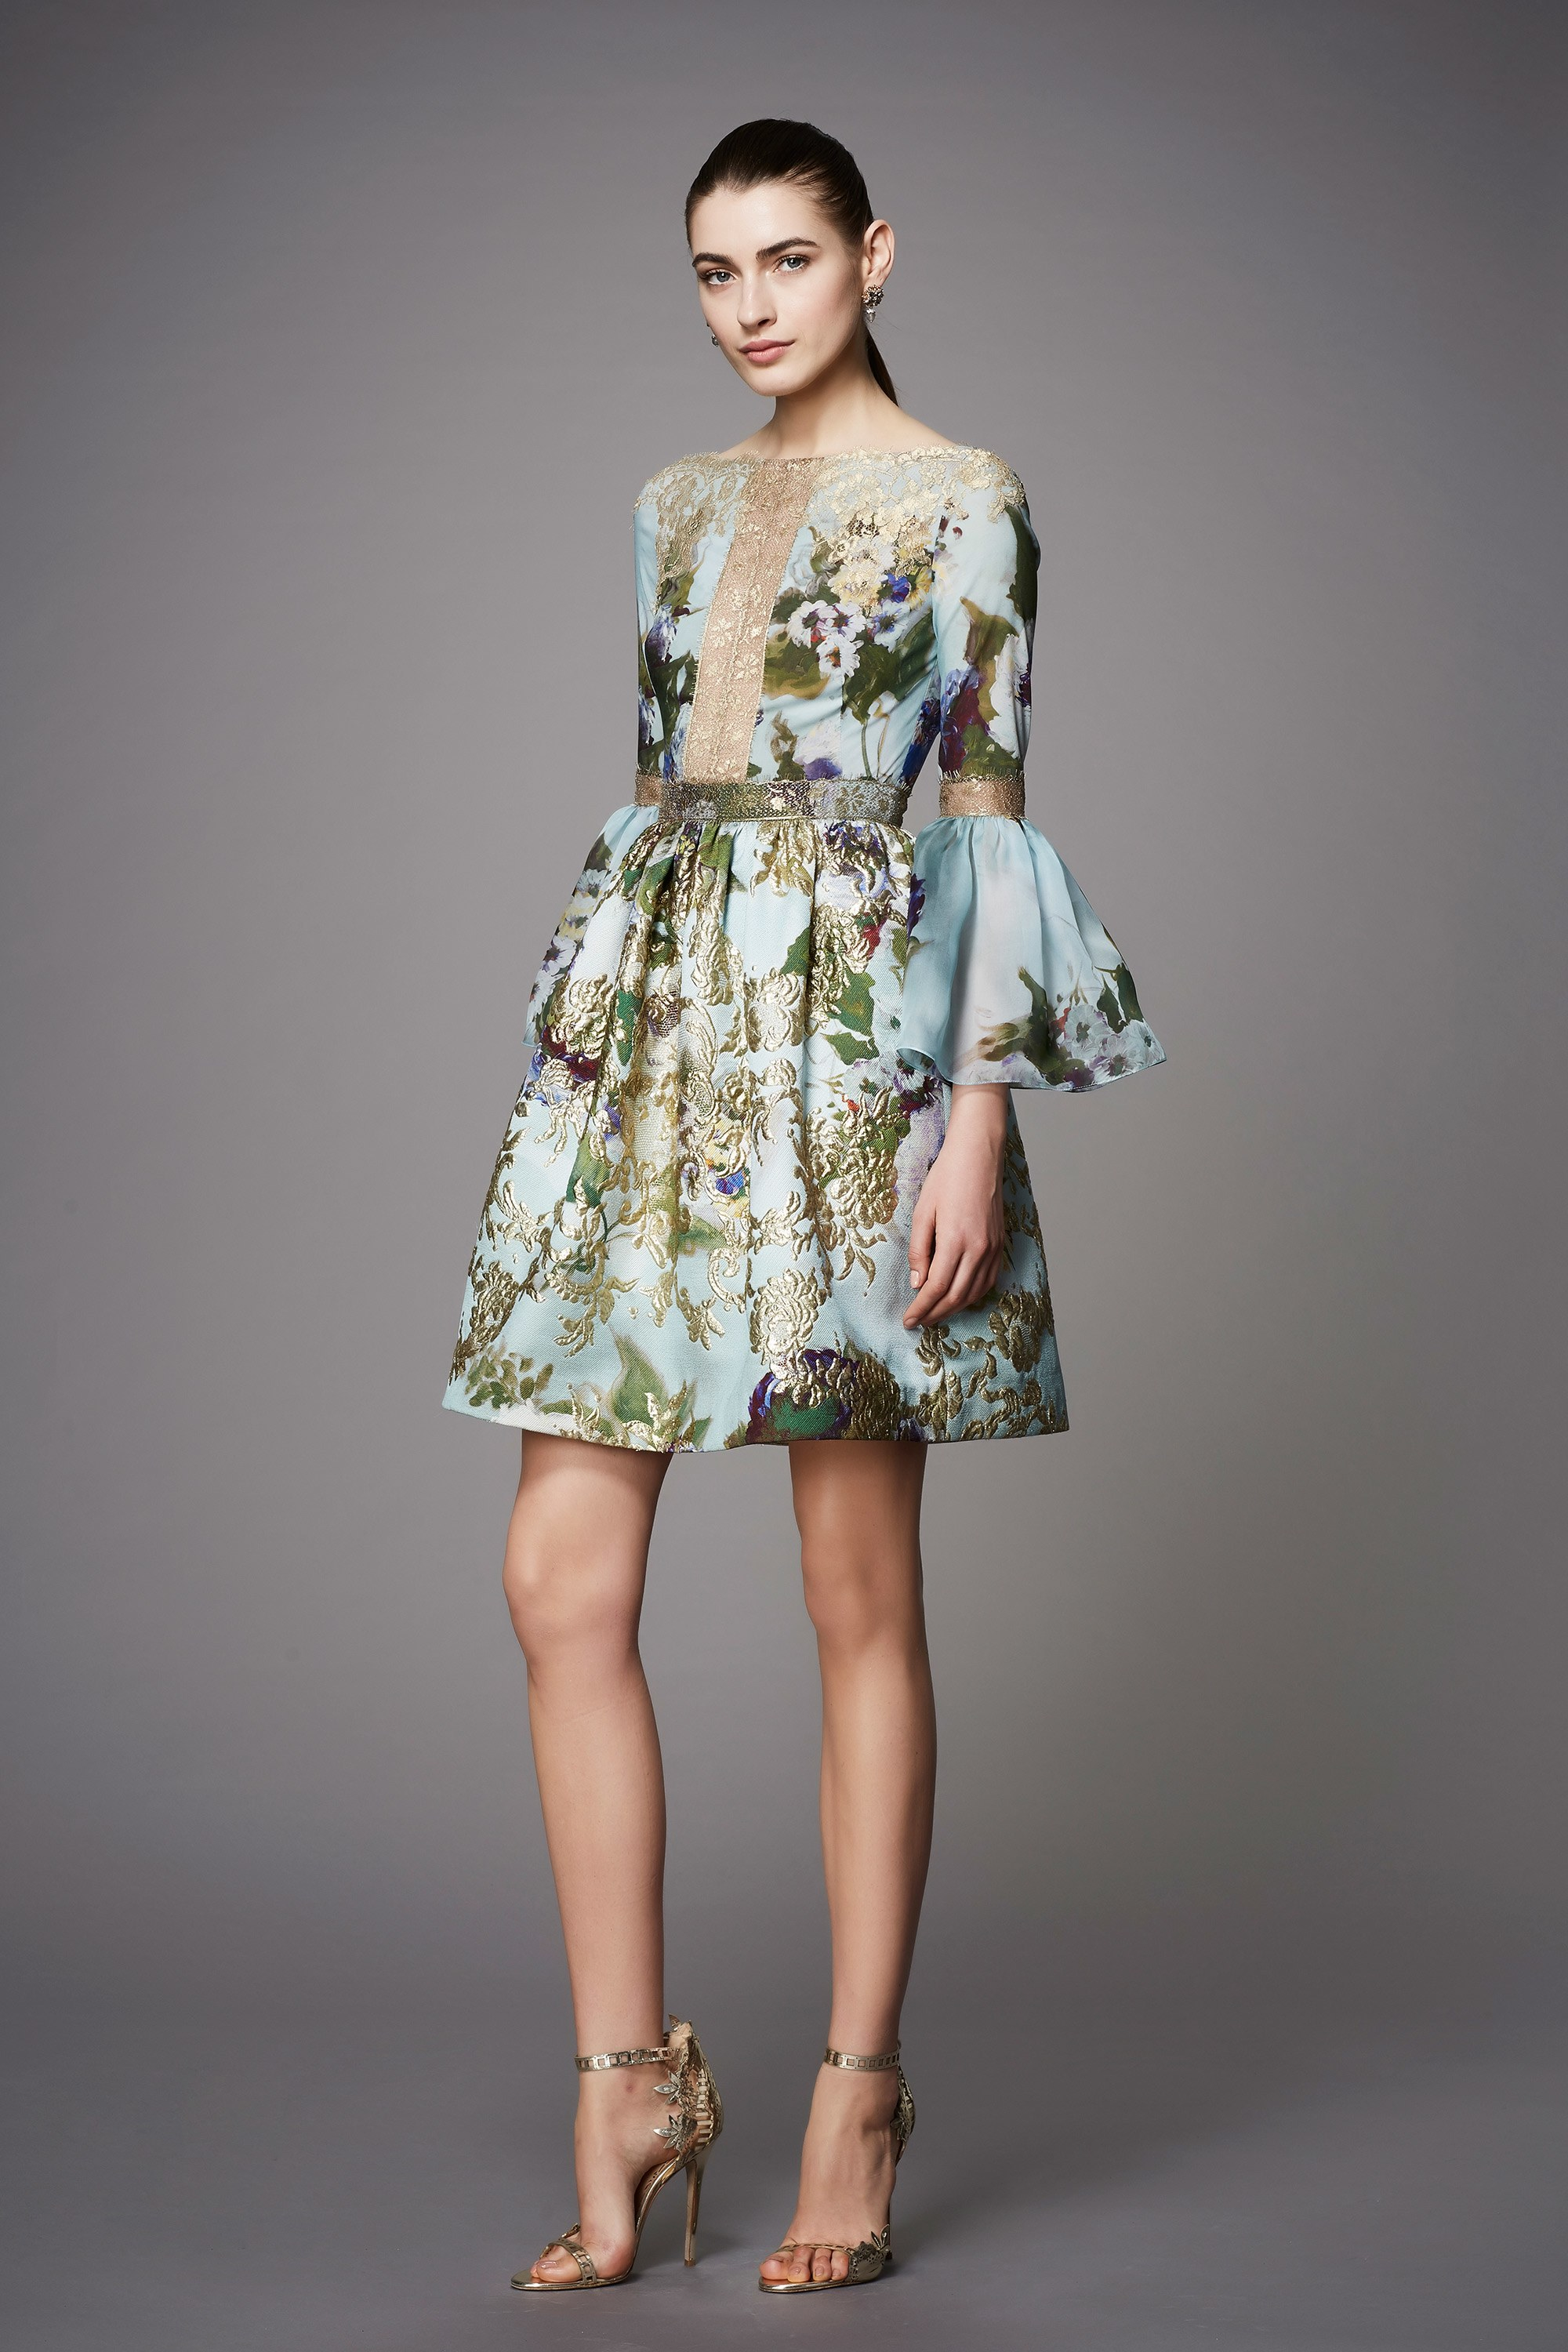 top-prints-fashion-trend-floral-dress-marchesa-spring-2017